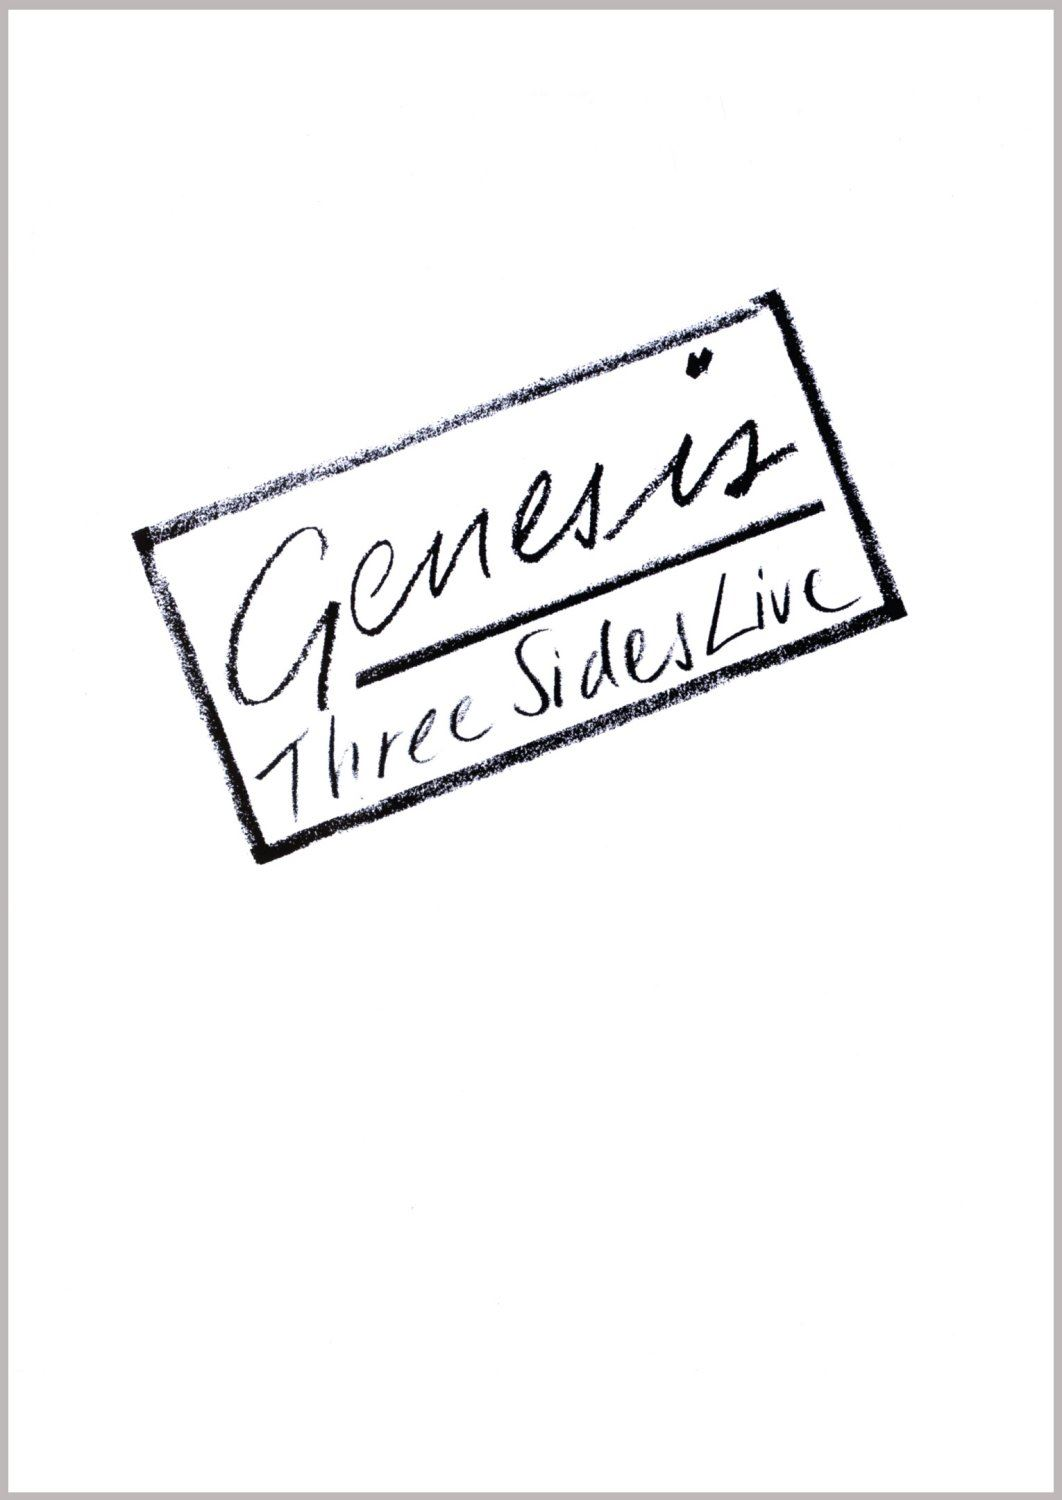 Genesis: Three Sides Live